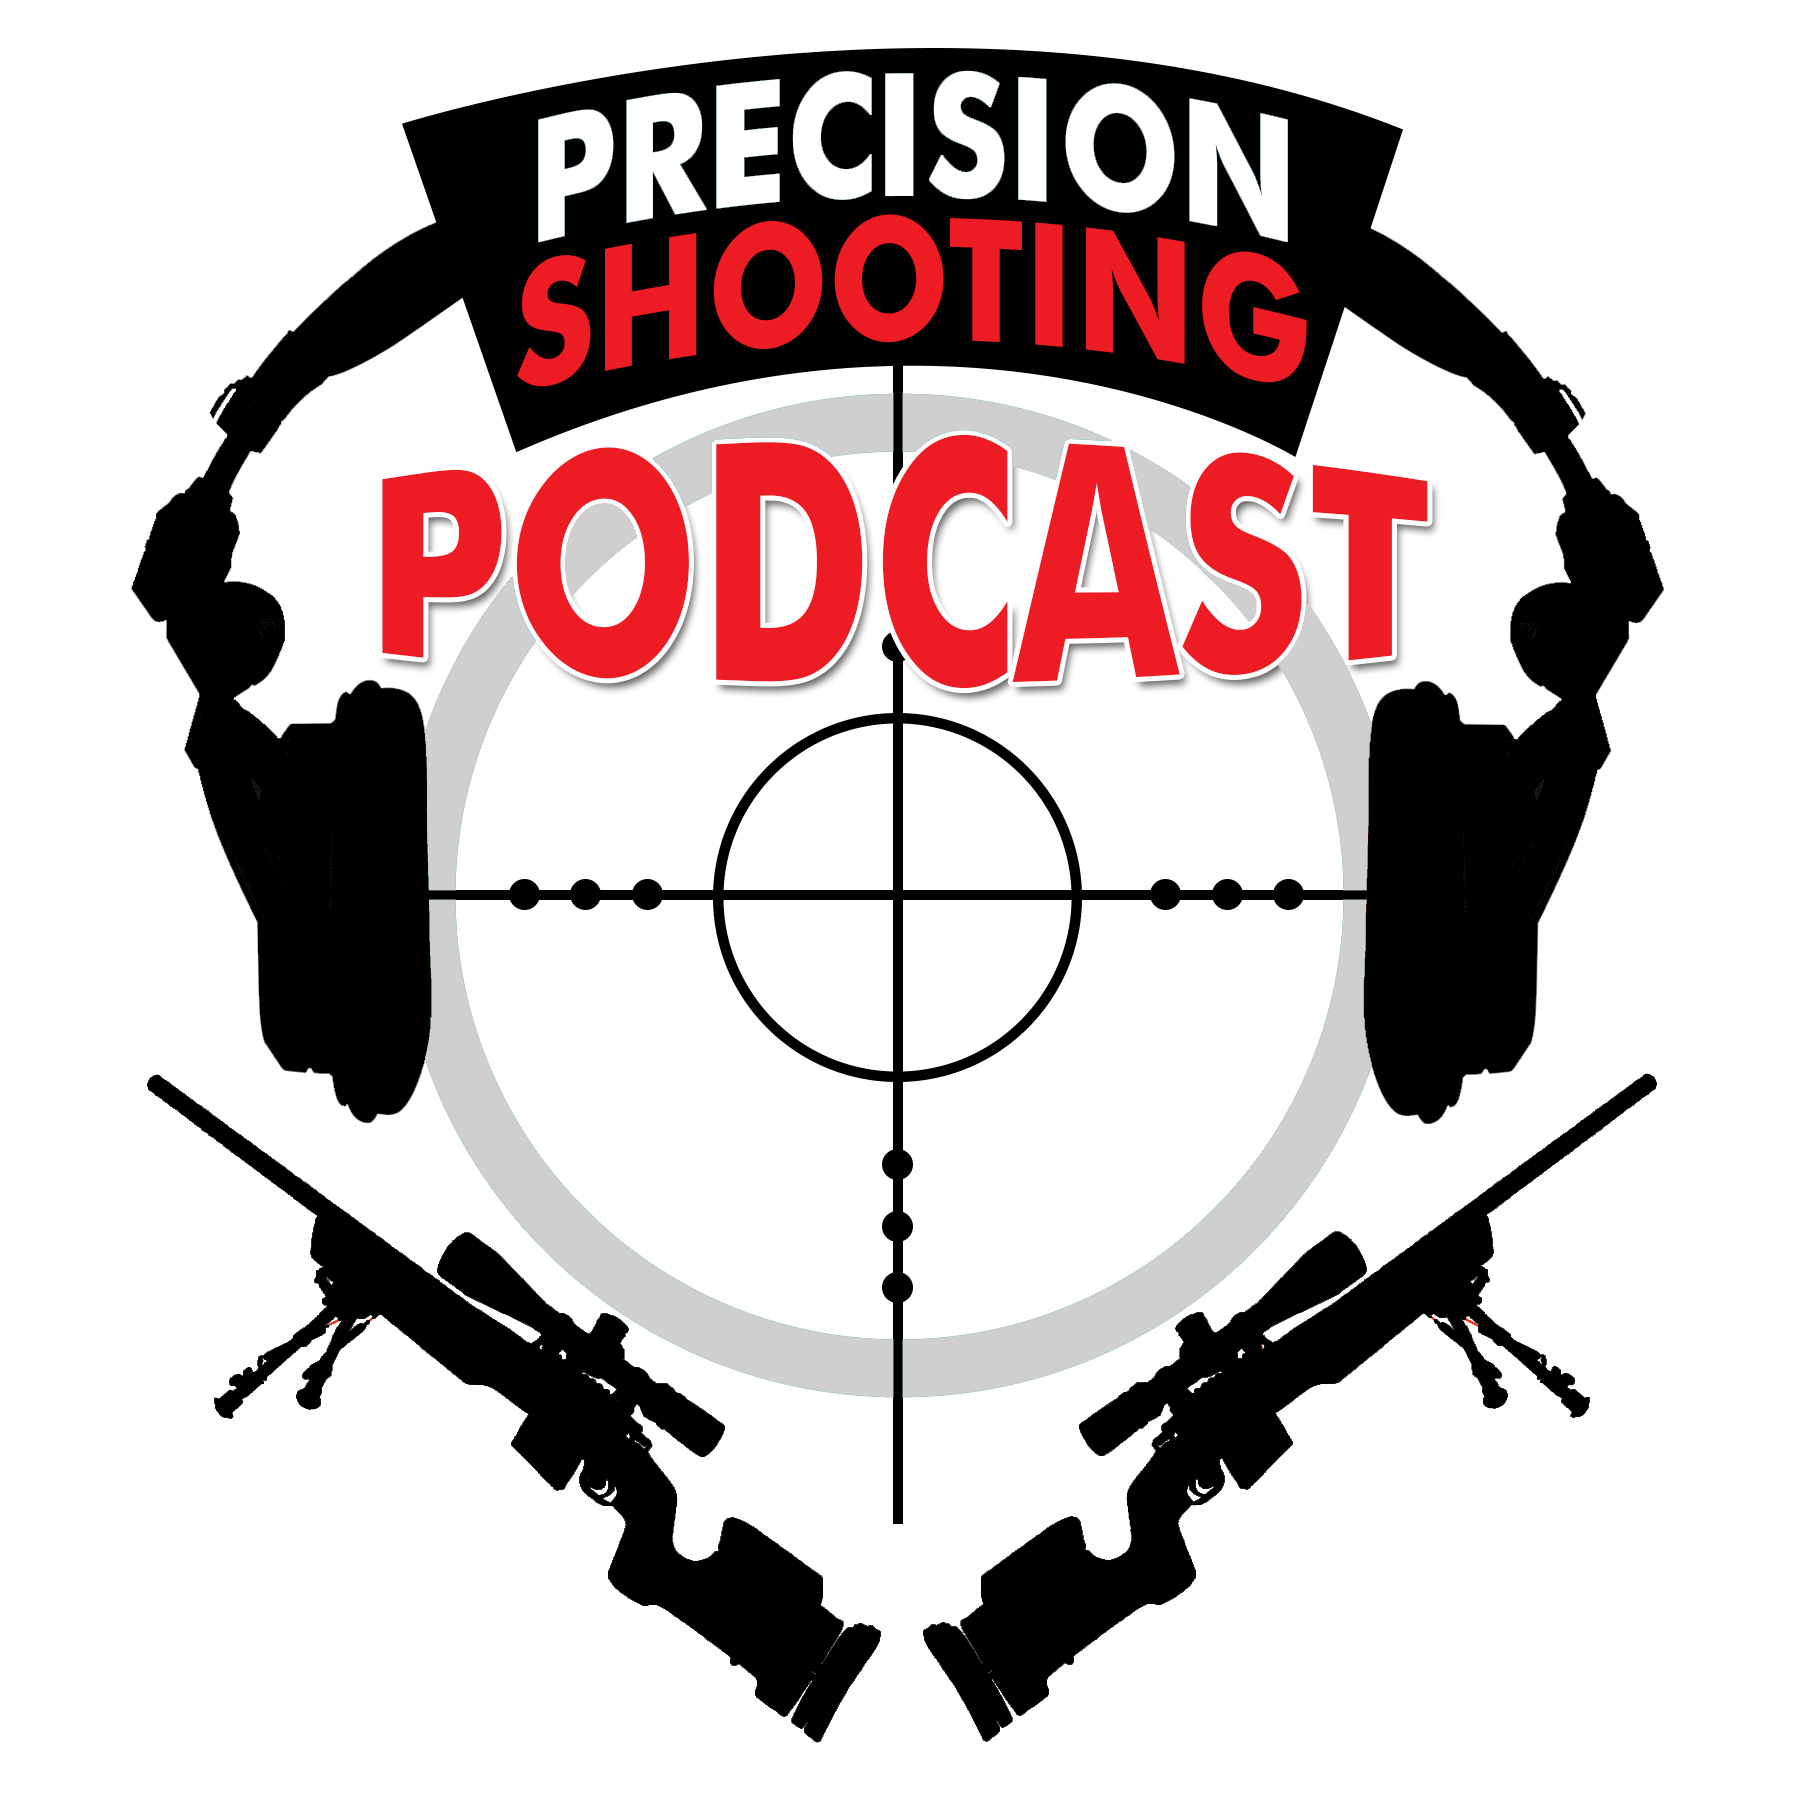 Precision Shooting Podcast - Precision Shooting PodcastThis podcast is put together by a bunch of guys who are passionate about Precision Shooting. Each of us have a different journey with different experiences that have lead to us all being involved with precision & long range rifle shooting. We are all hunters, we are all steel target shooters.We each continually strive to push our limits, and increase our understanding of this fascinating sport. This is why we are podcasting. We want to share our experiences, both the ones we have had prior to starting this project, as well as the things we will learn, and people we will encounter while going through this stage of our journey.We each have our different interests in the sport, and we represent a wide diversity of skills, knowledge and abilities. We invite you to learn with us as we continue to expand our understanding of all things precision.Happy Shooting!